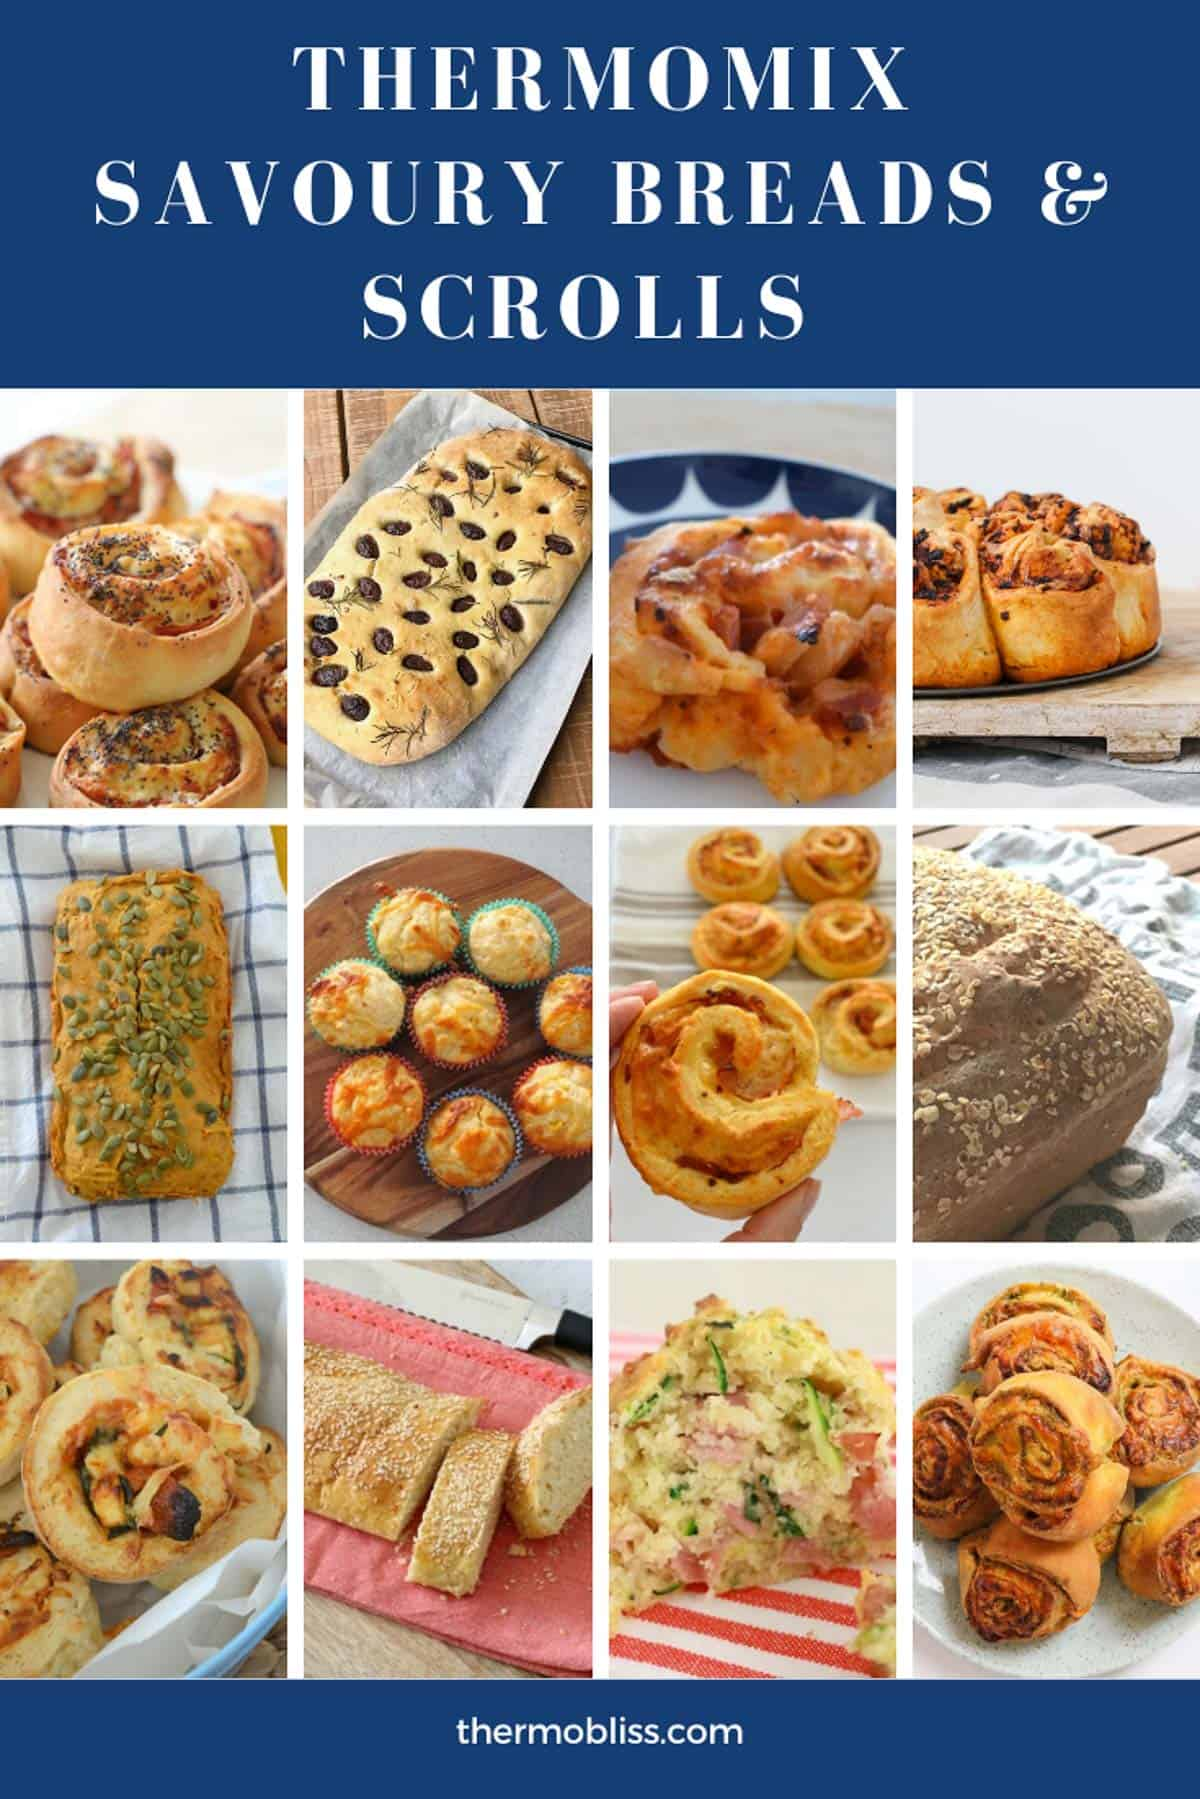 A collection of homemade breads, loaves, muffins and scrolls made in the Thermomix.